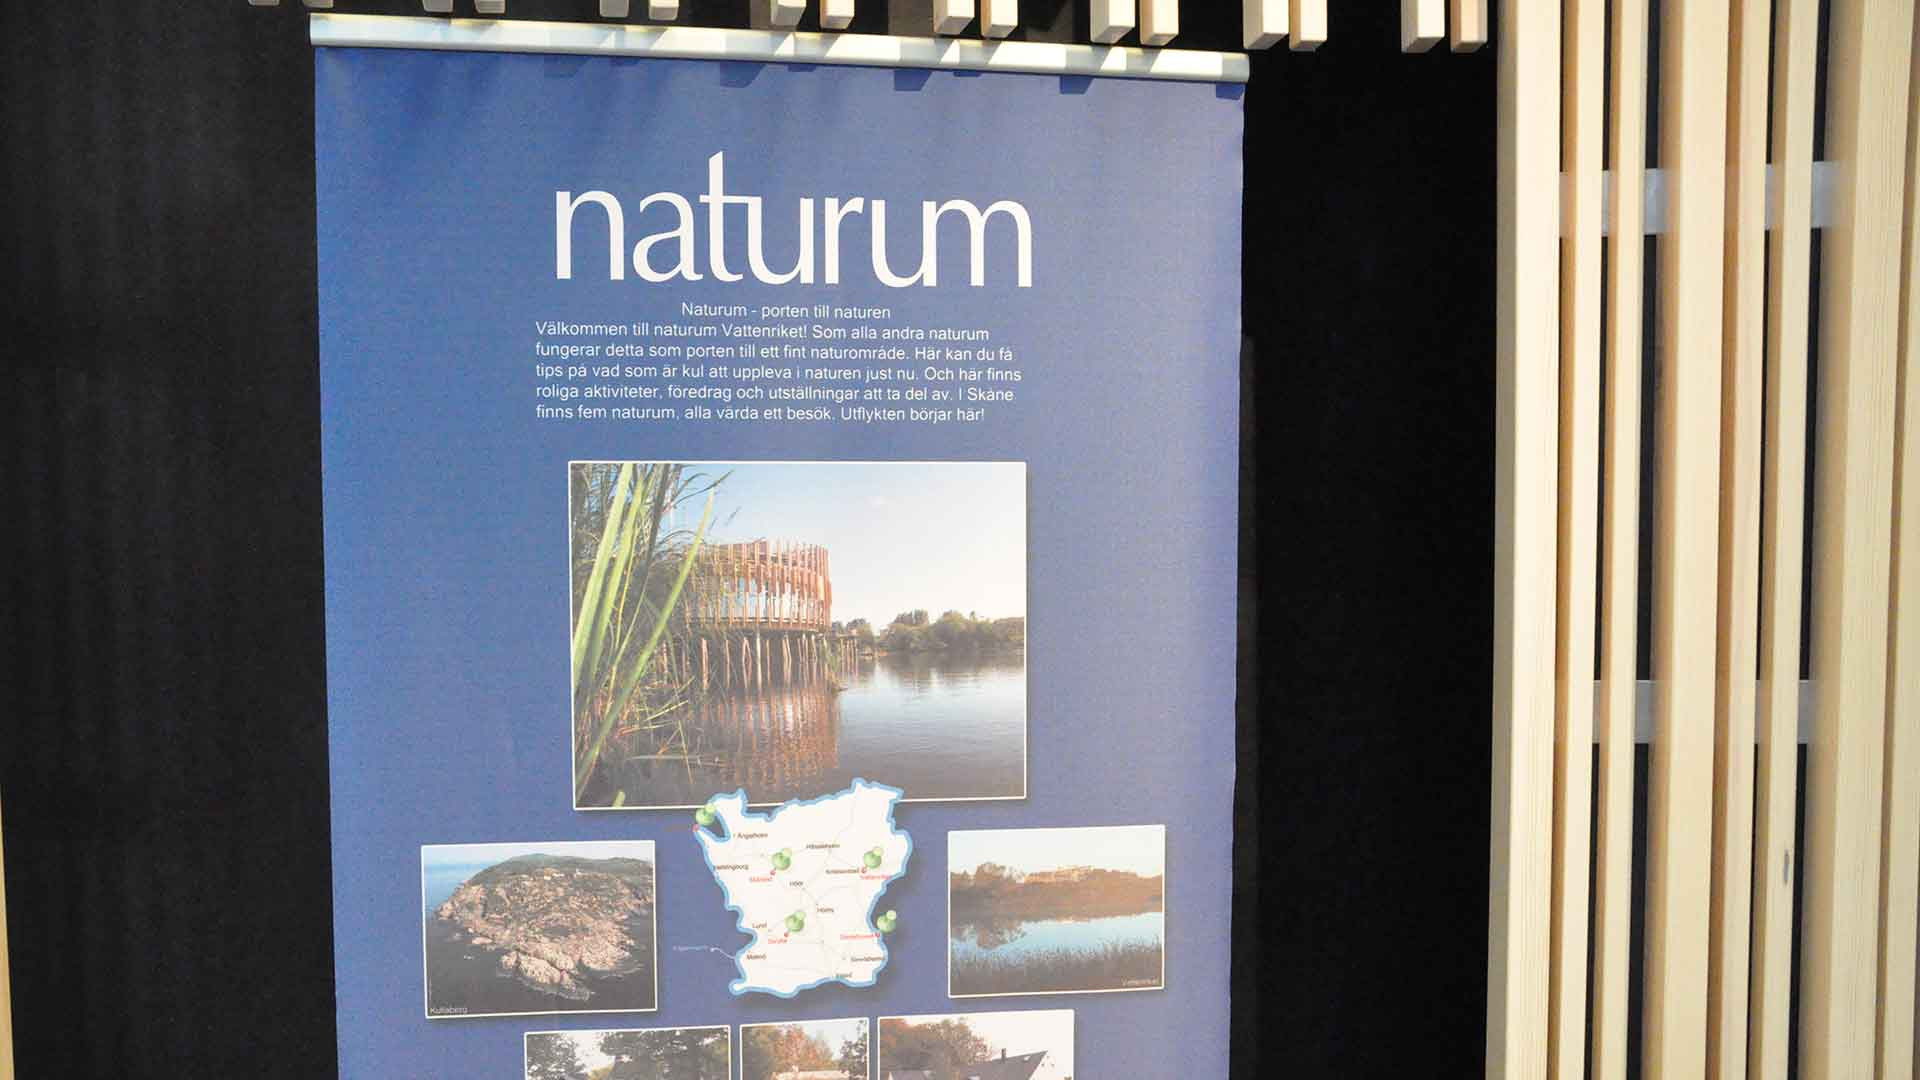 Exhibition - naturum the gateway to nature